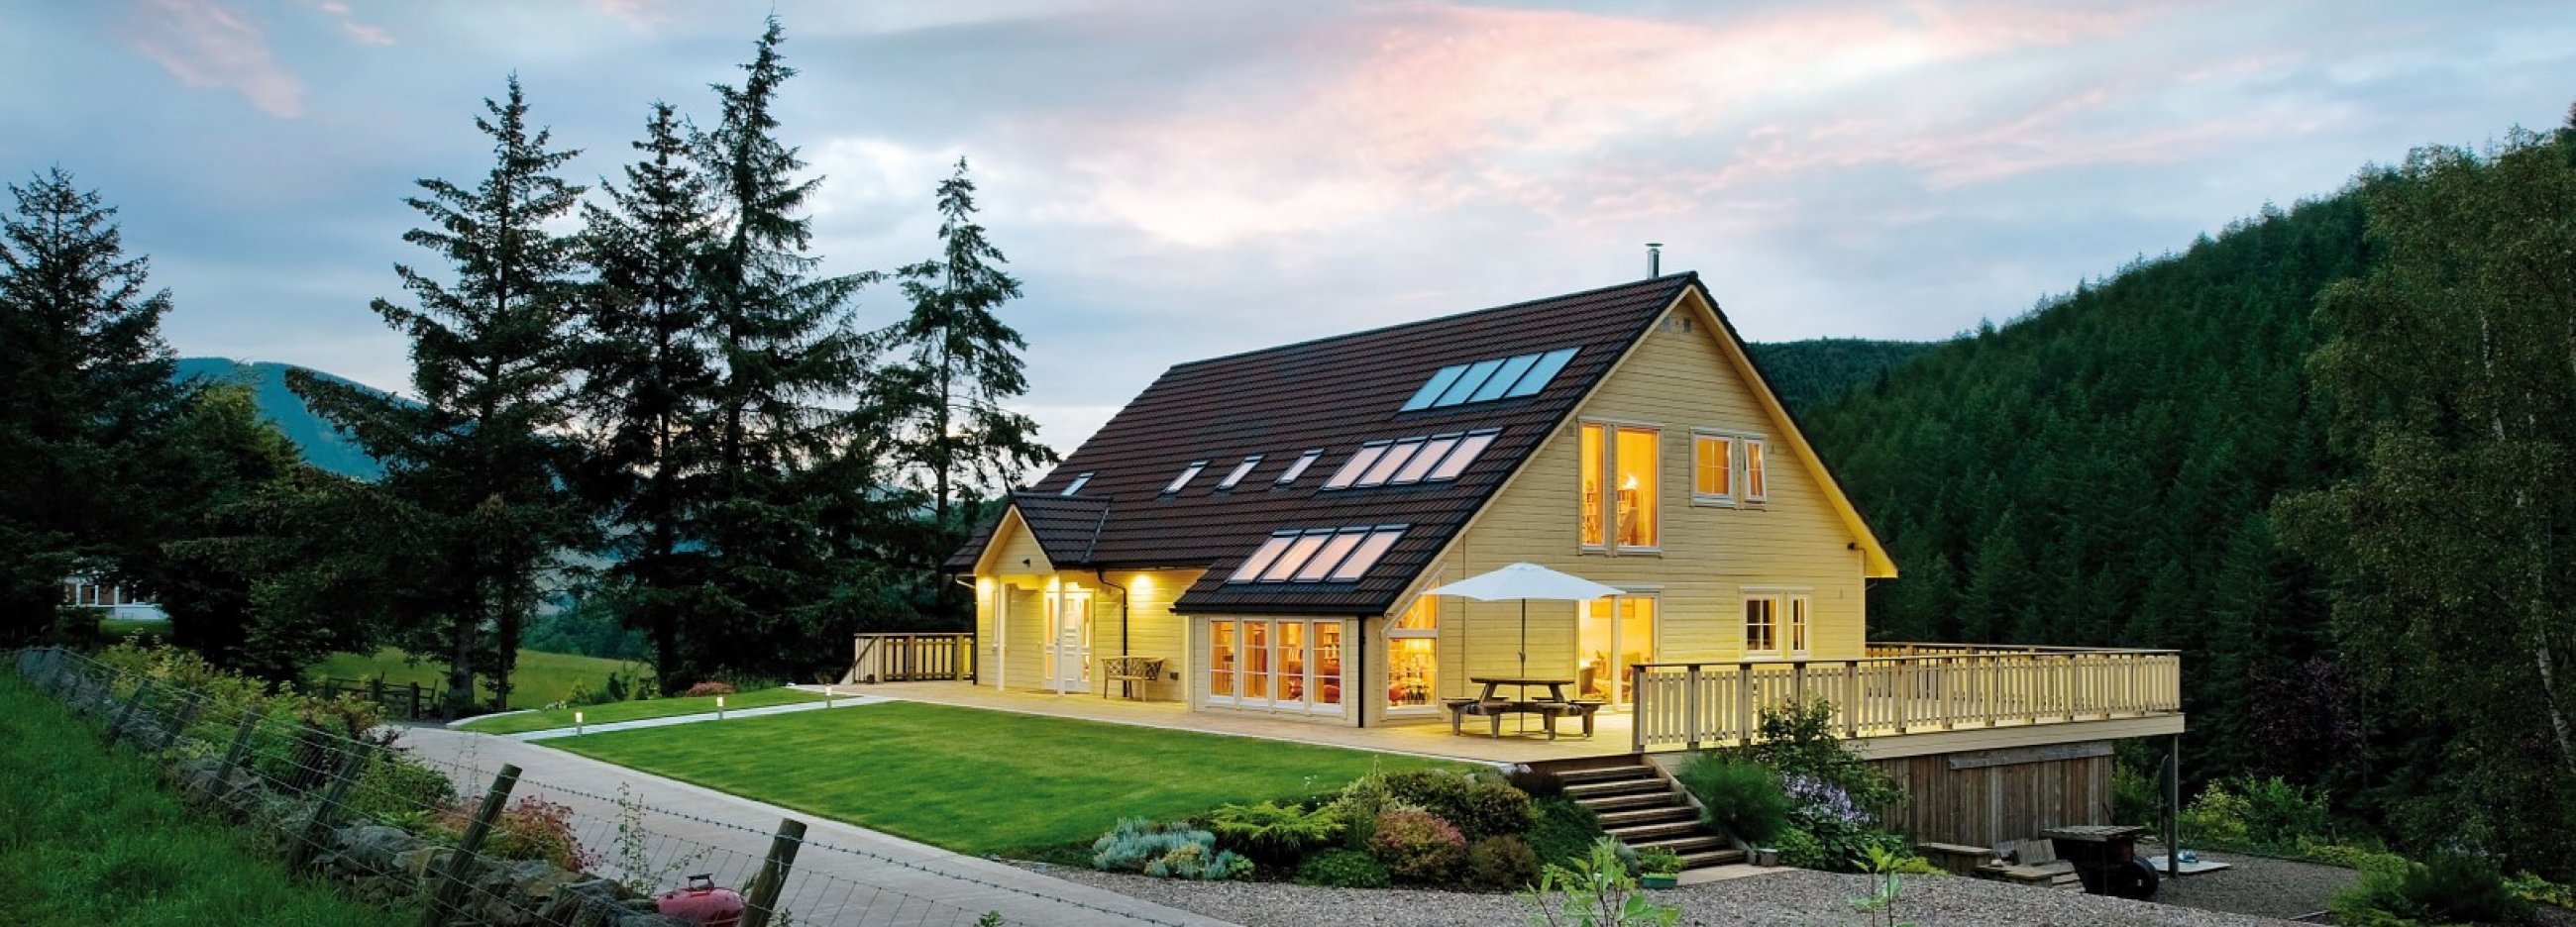 Energy efficient dream homes